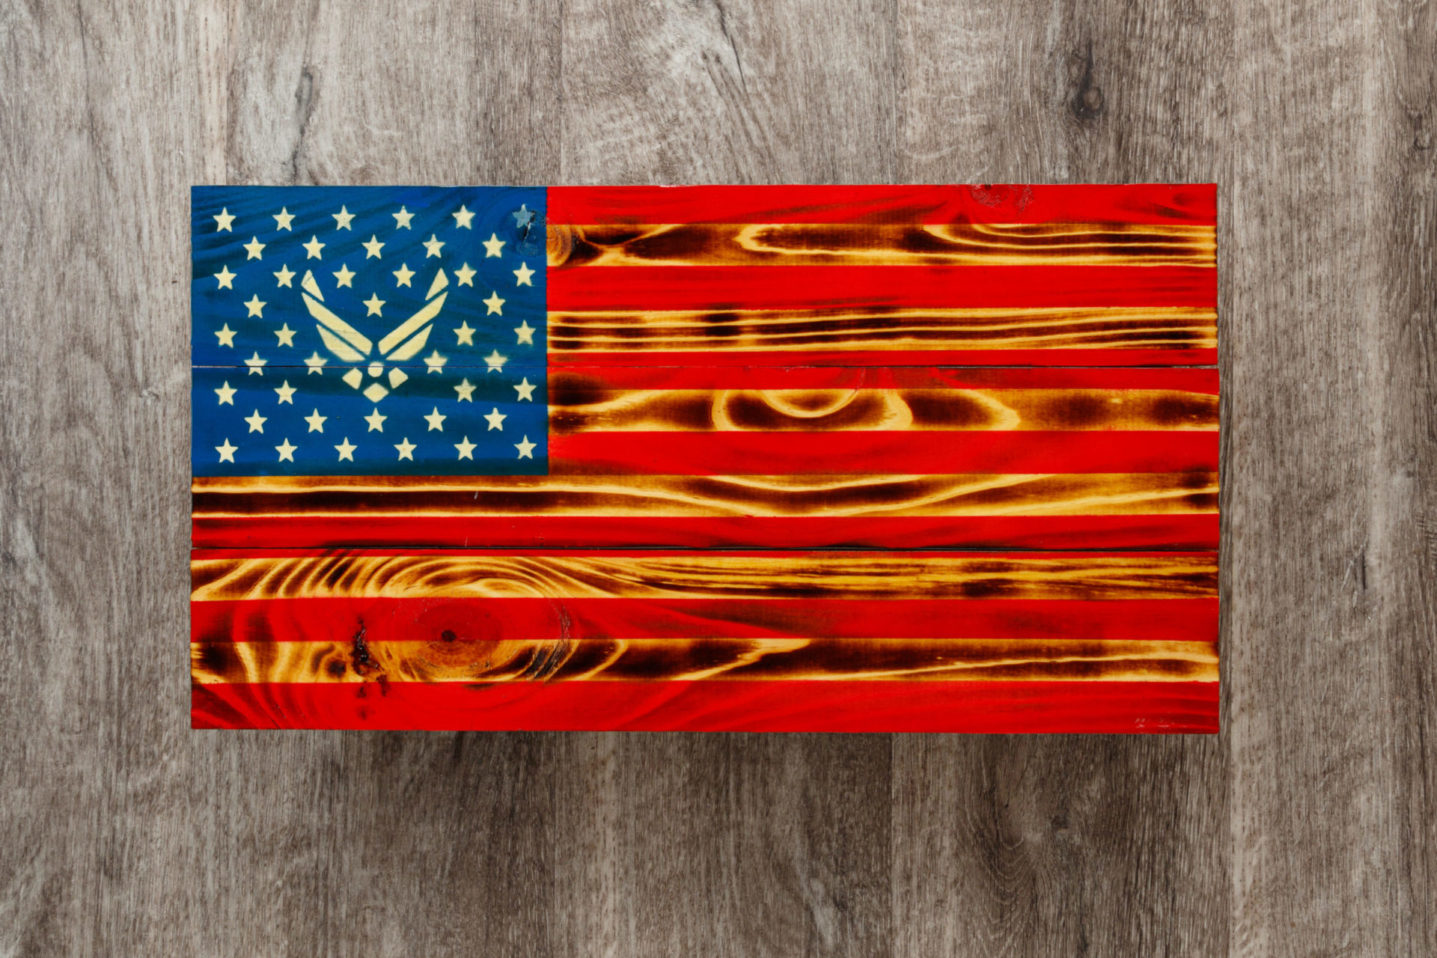 Air force wooden American flag wall art